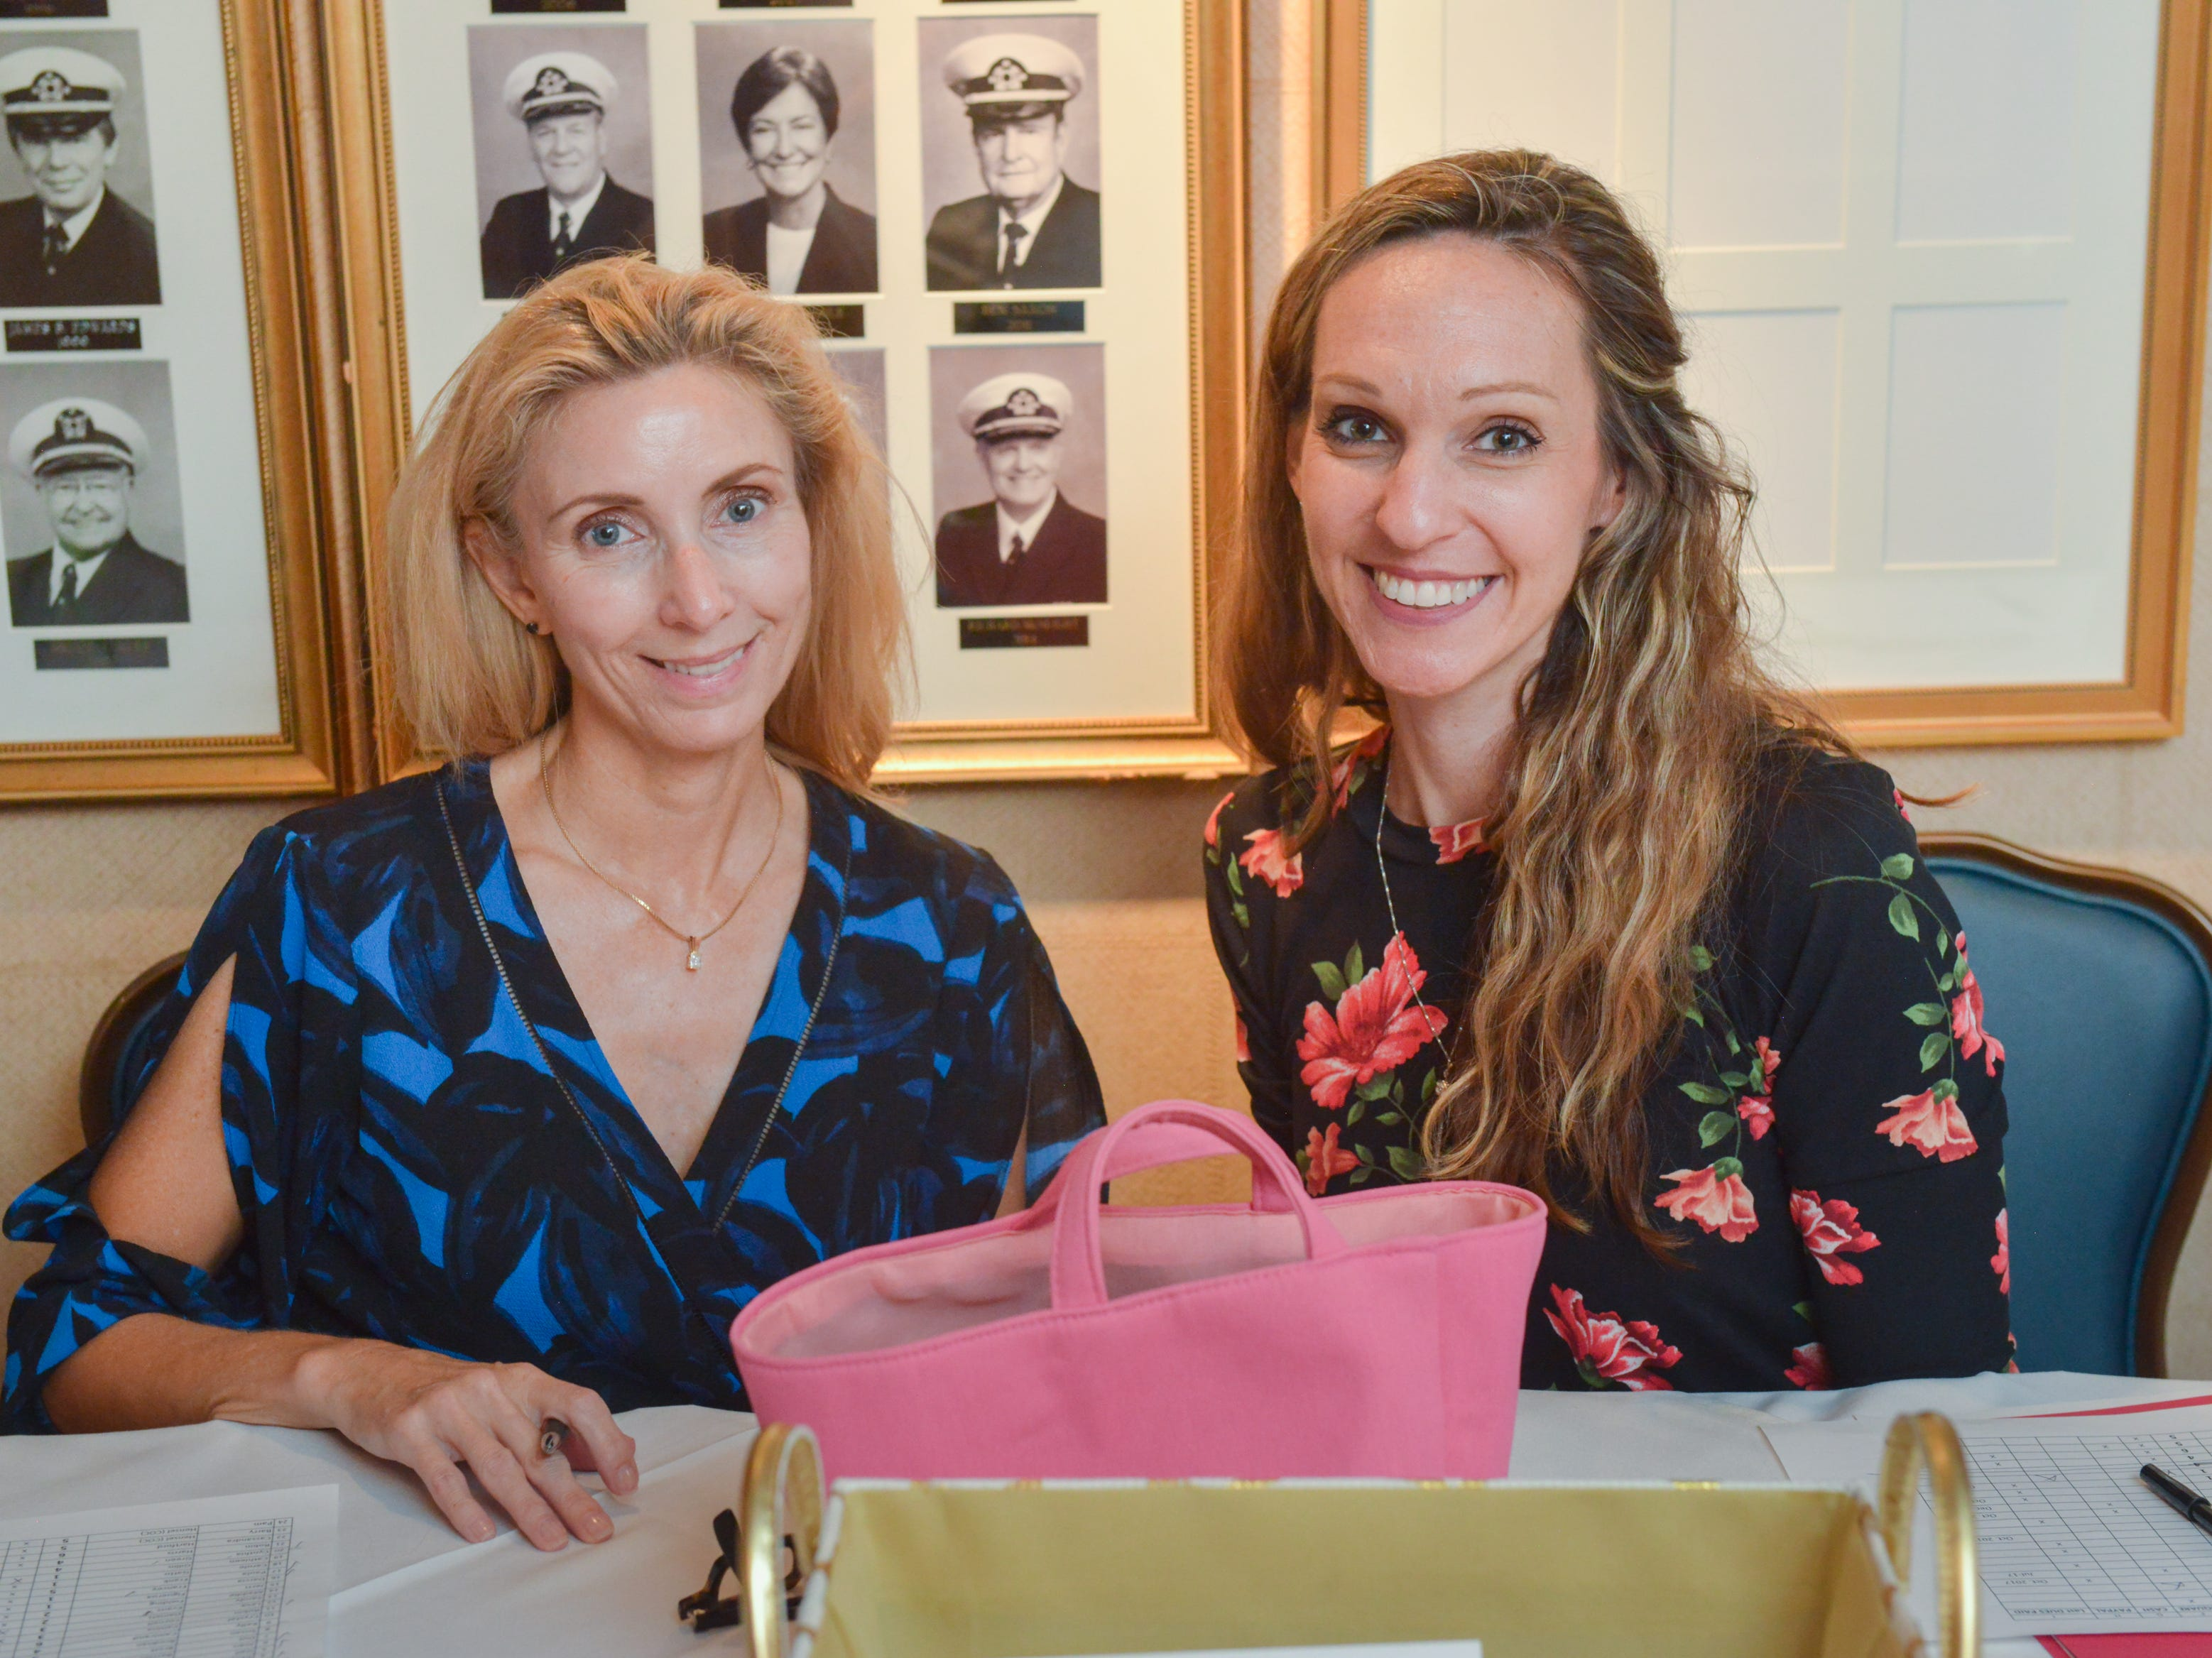 Robin Cornell and Veronica Weiss at Friends of Sally's House luncheon at the Eau Gallie Yacht Club.